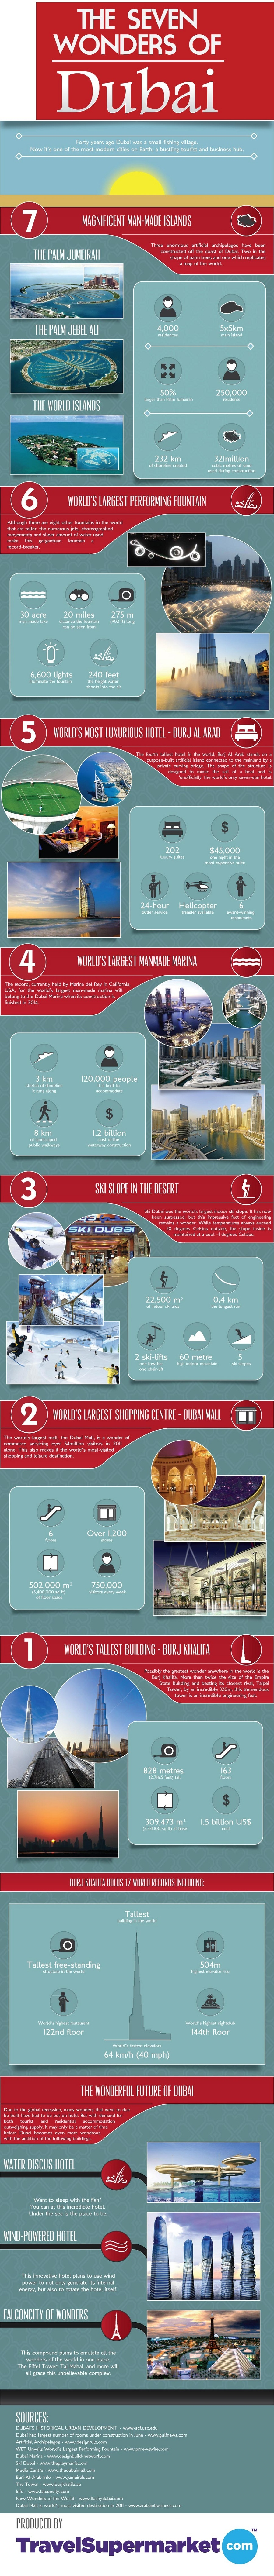 7 Wonders of Dubai Infographic